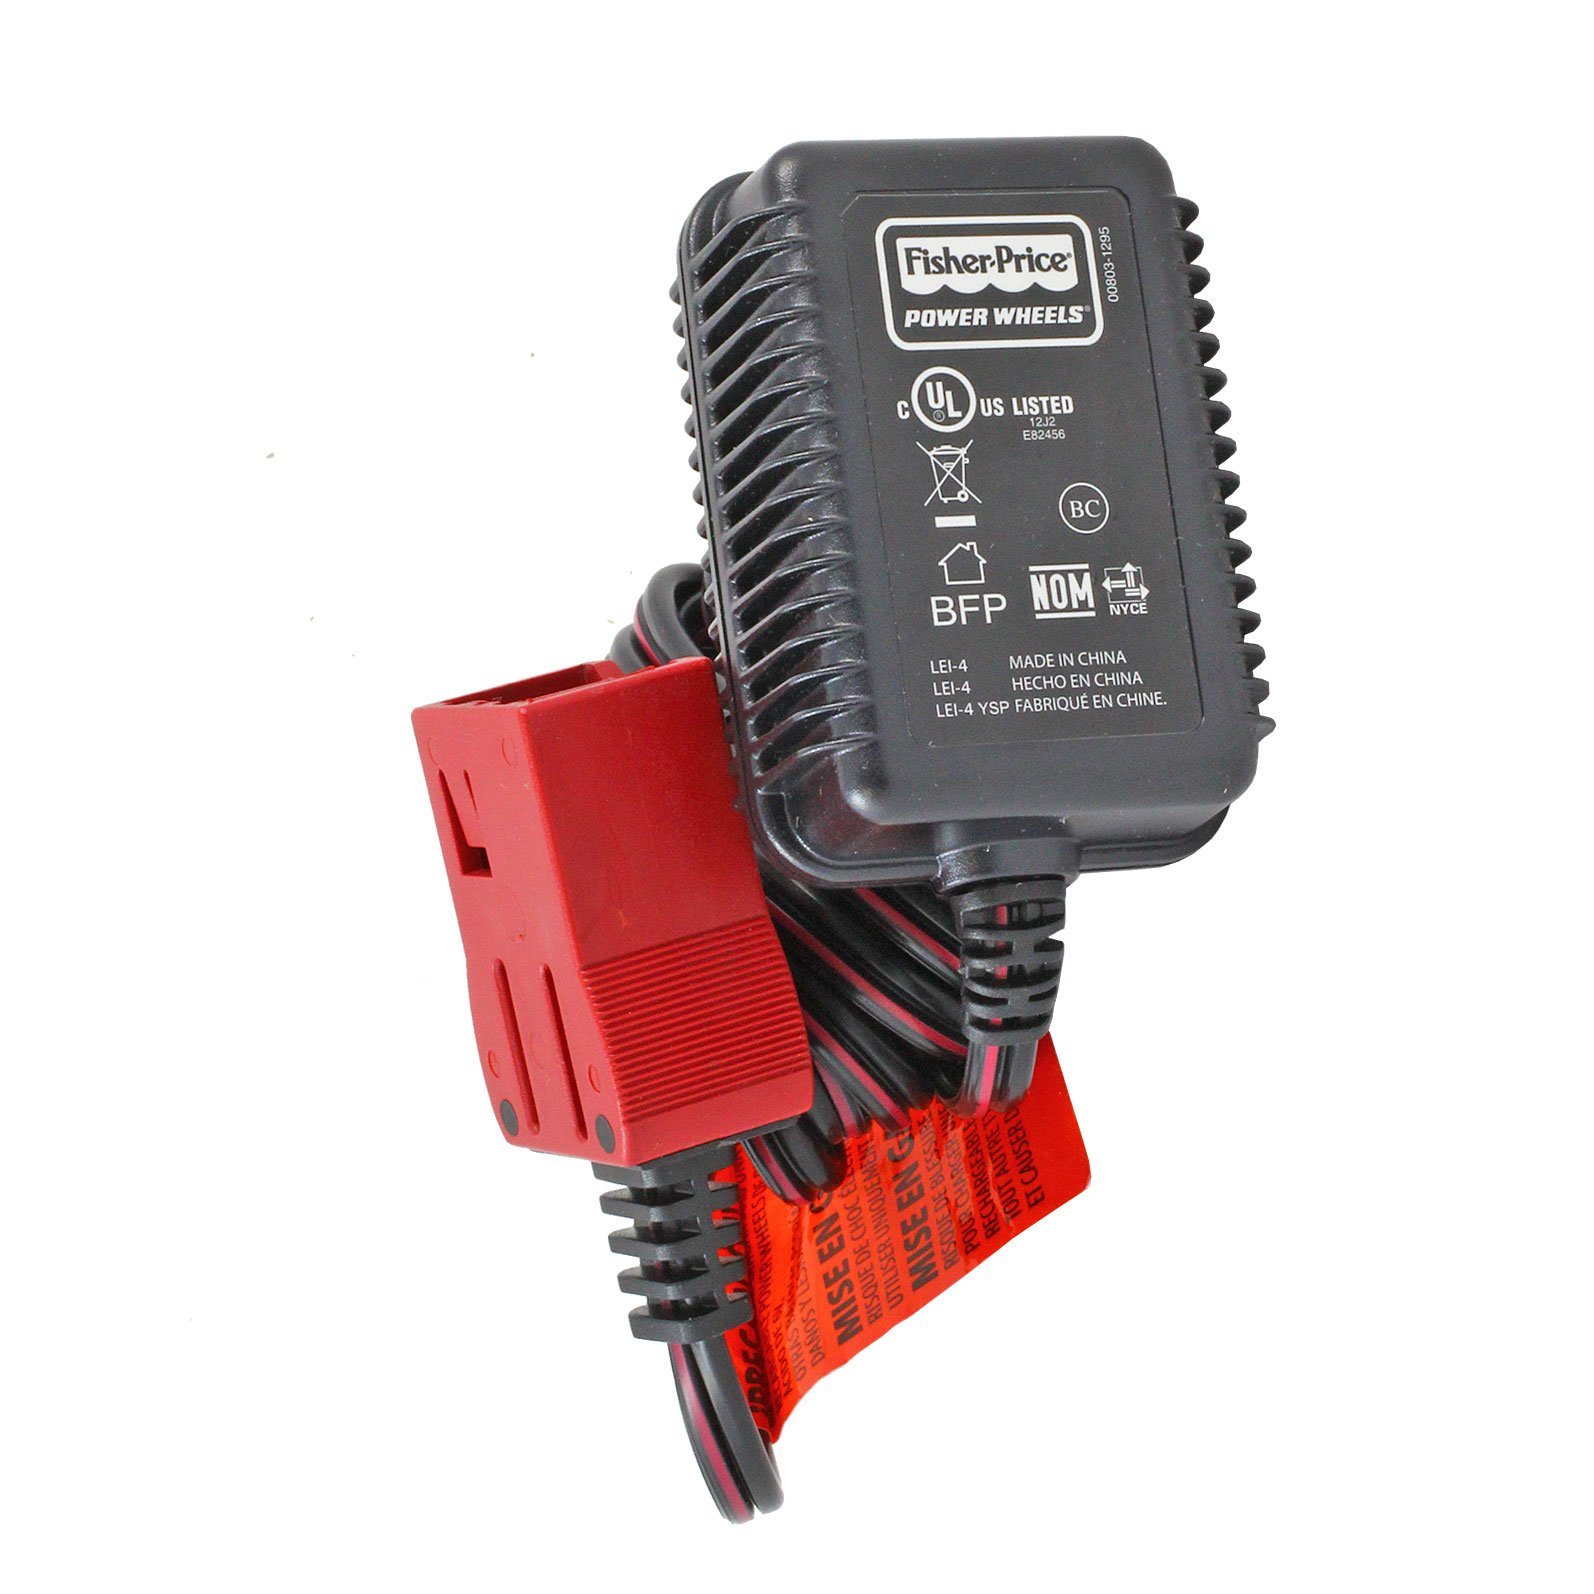 6 Volt A Plug Power Wheels Battery Charger (for Red ...